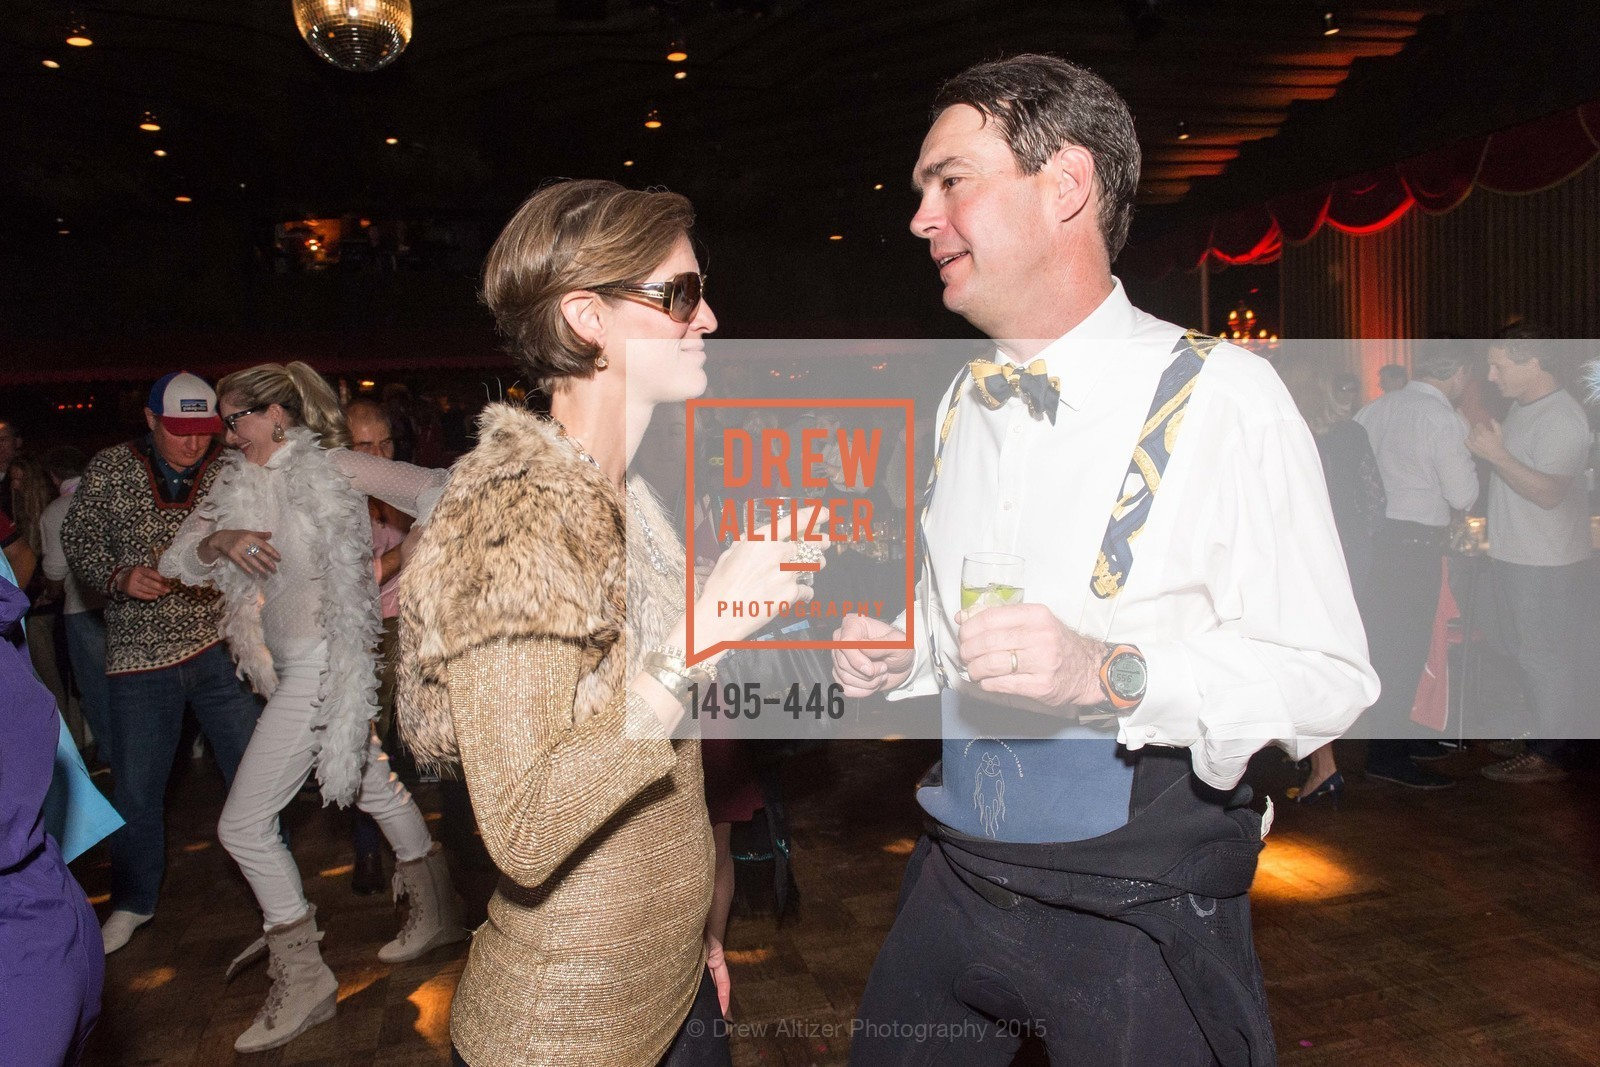 Extras, U.S. Ski and Snowboard Foundation's Snow Ball, November 7th, 2015, Photo,Drew Altizer, Drew Altizer Photography, full-service agency, private events, San Francisco photographer, photographer california